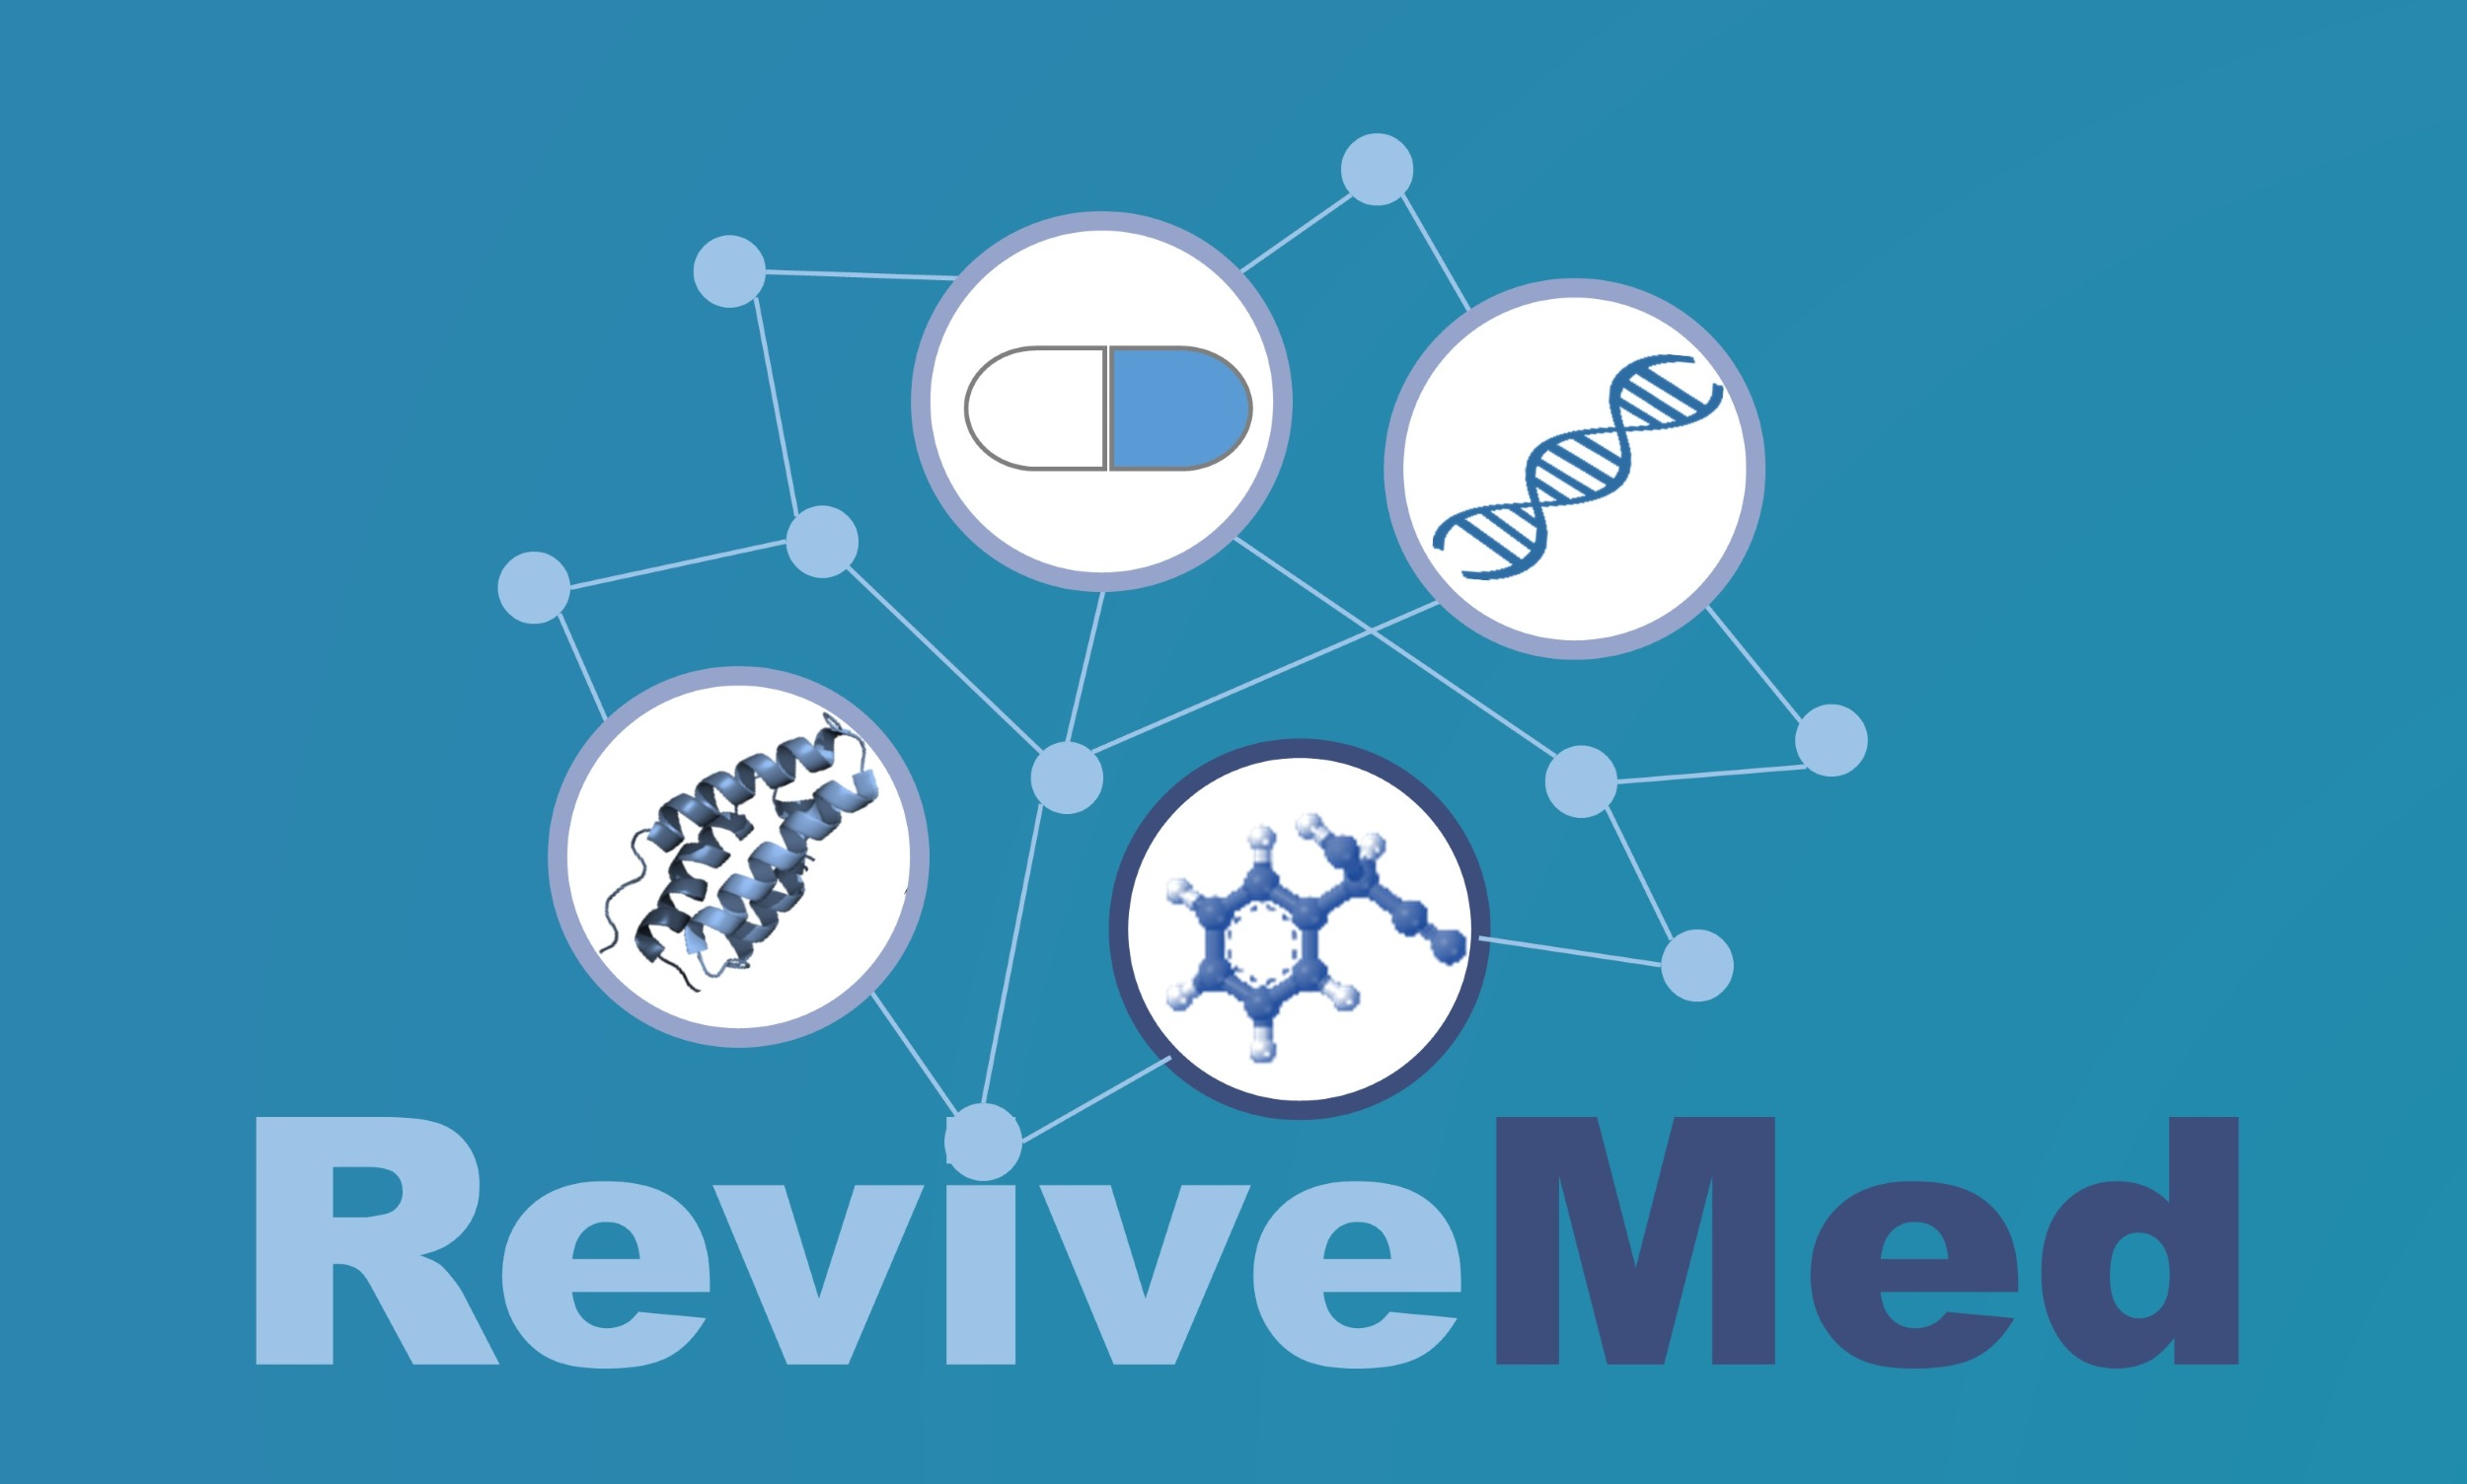 ReviveMed turns drug discovery into a big data problem and raises $1.5M to solve it